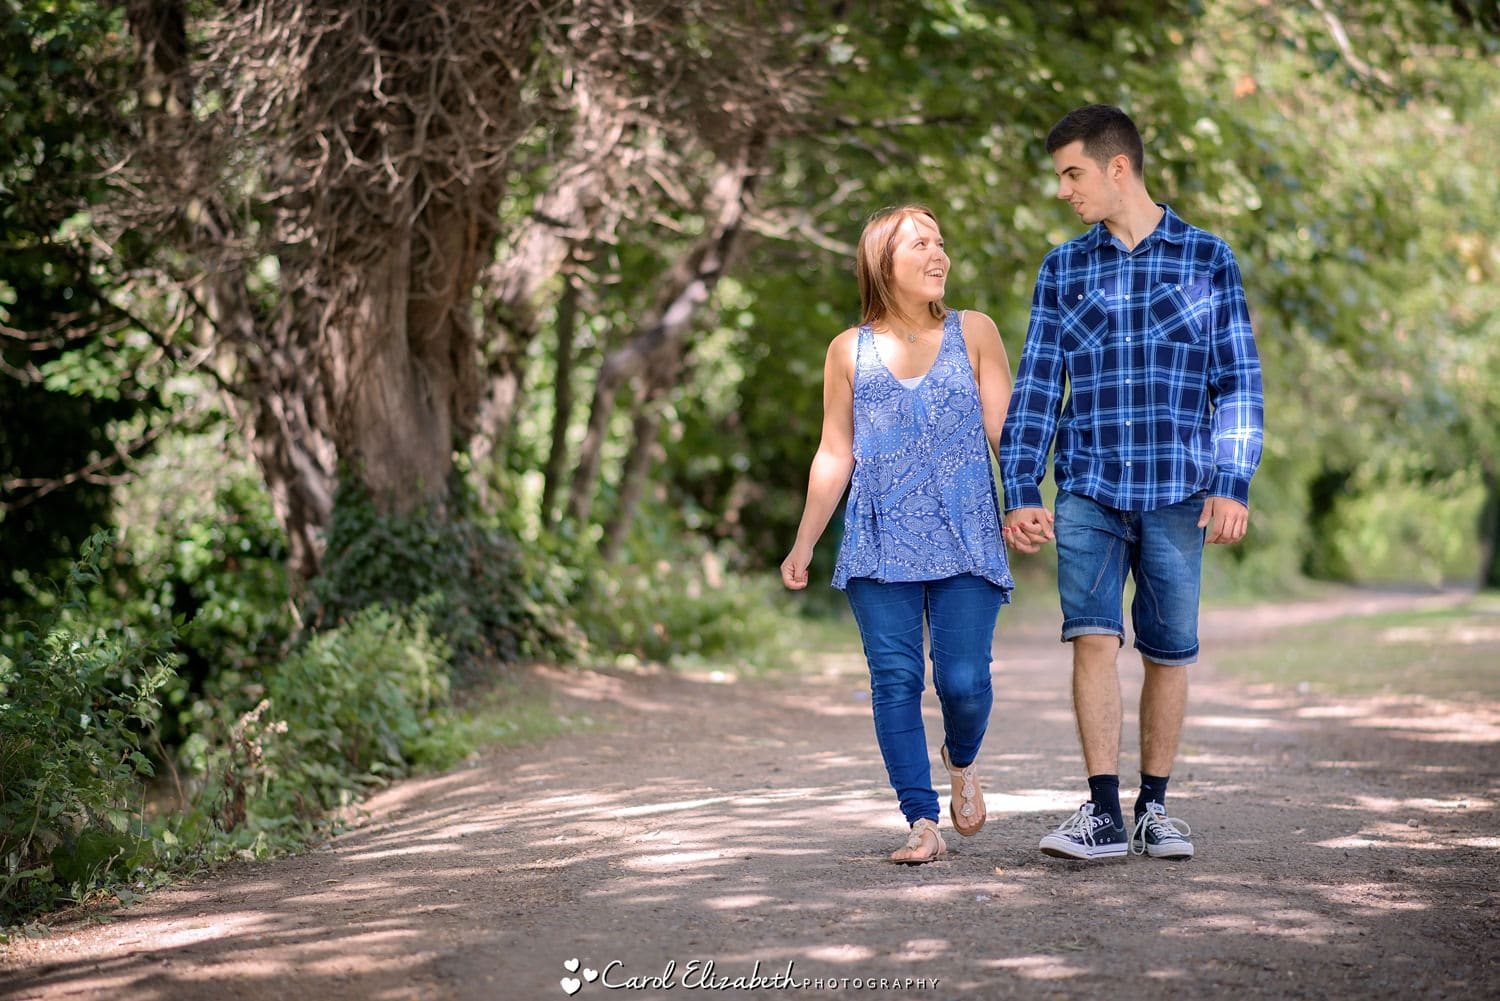 Outdoor family photography Abingdon